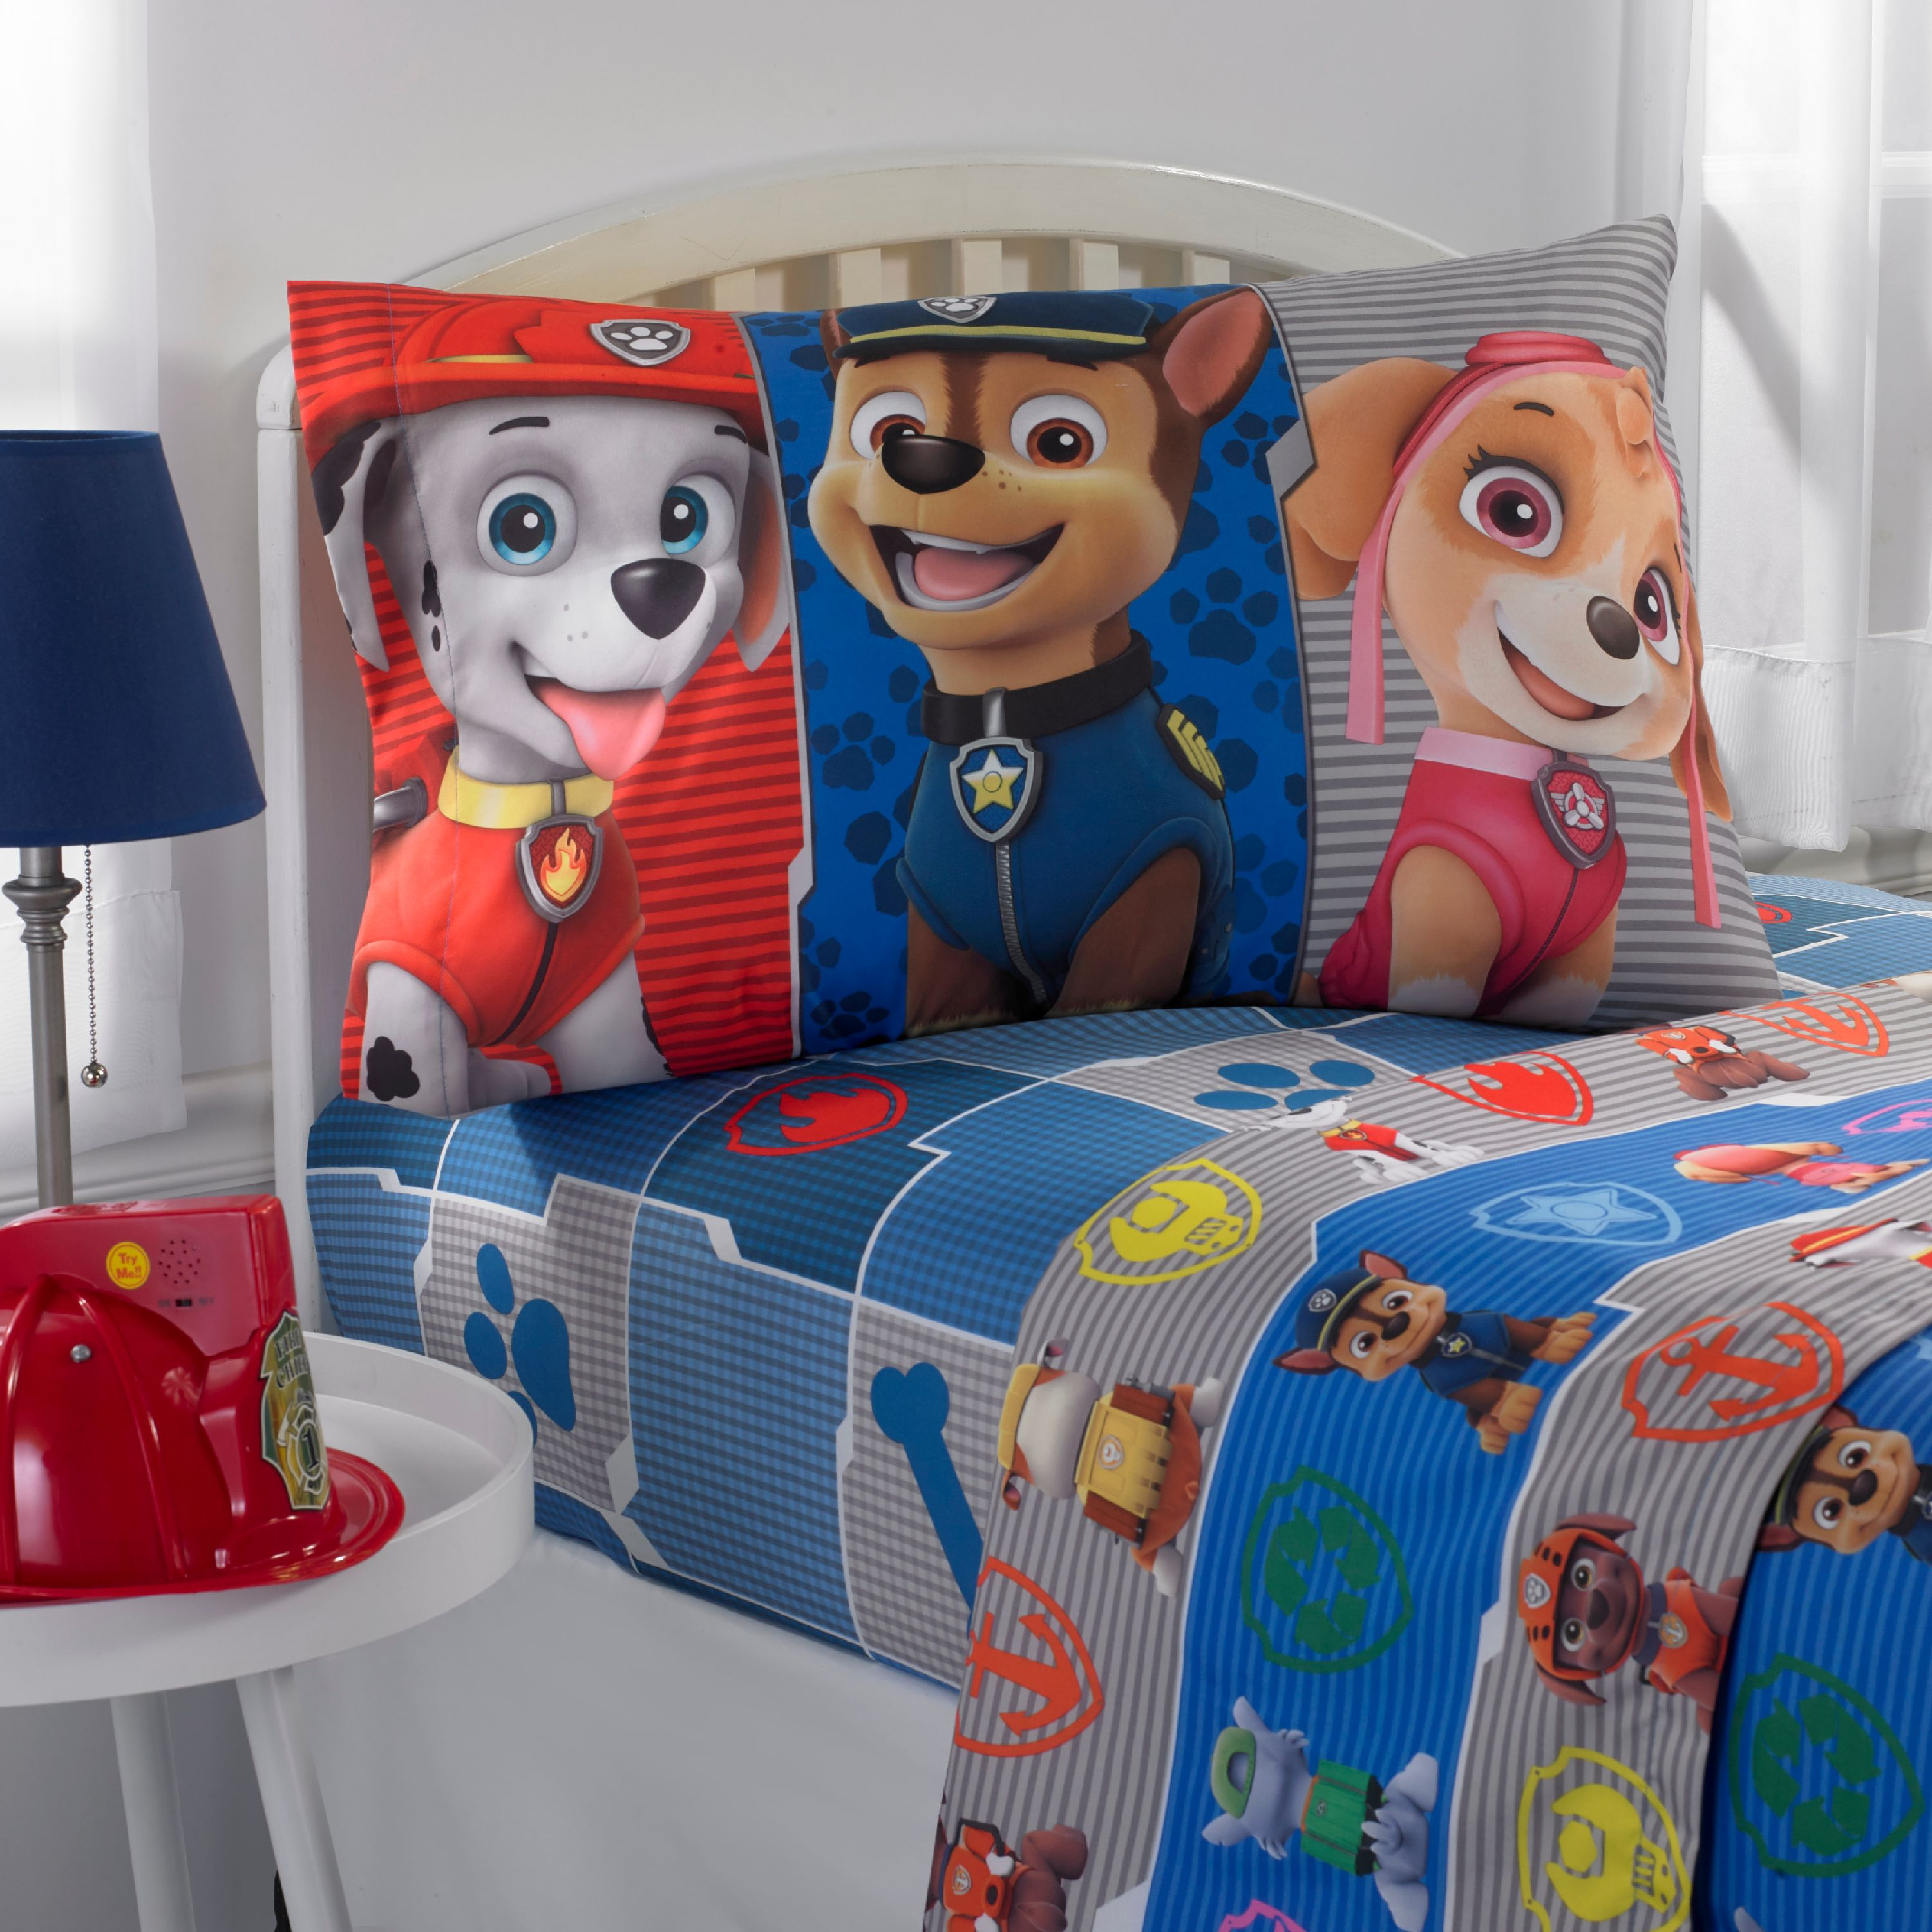 Paw Patrol Gang's All Here Kids Bedding Twin Sheet Set, 1 Each